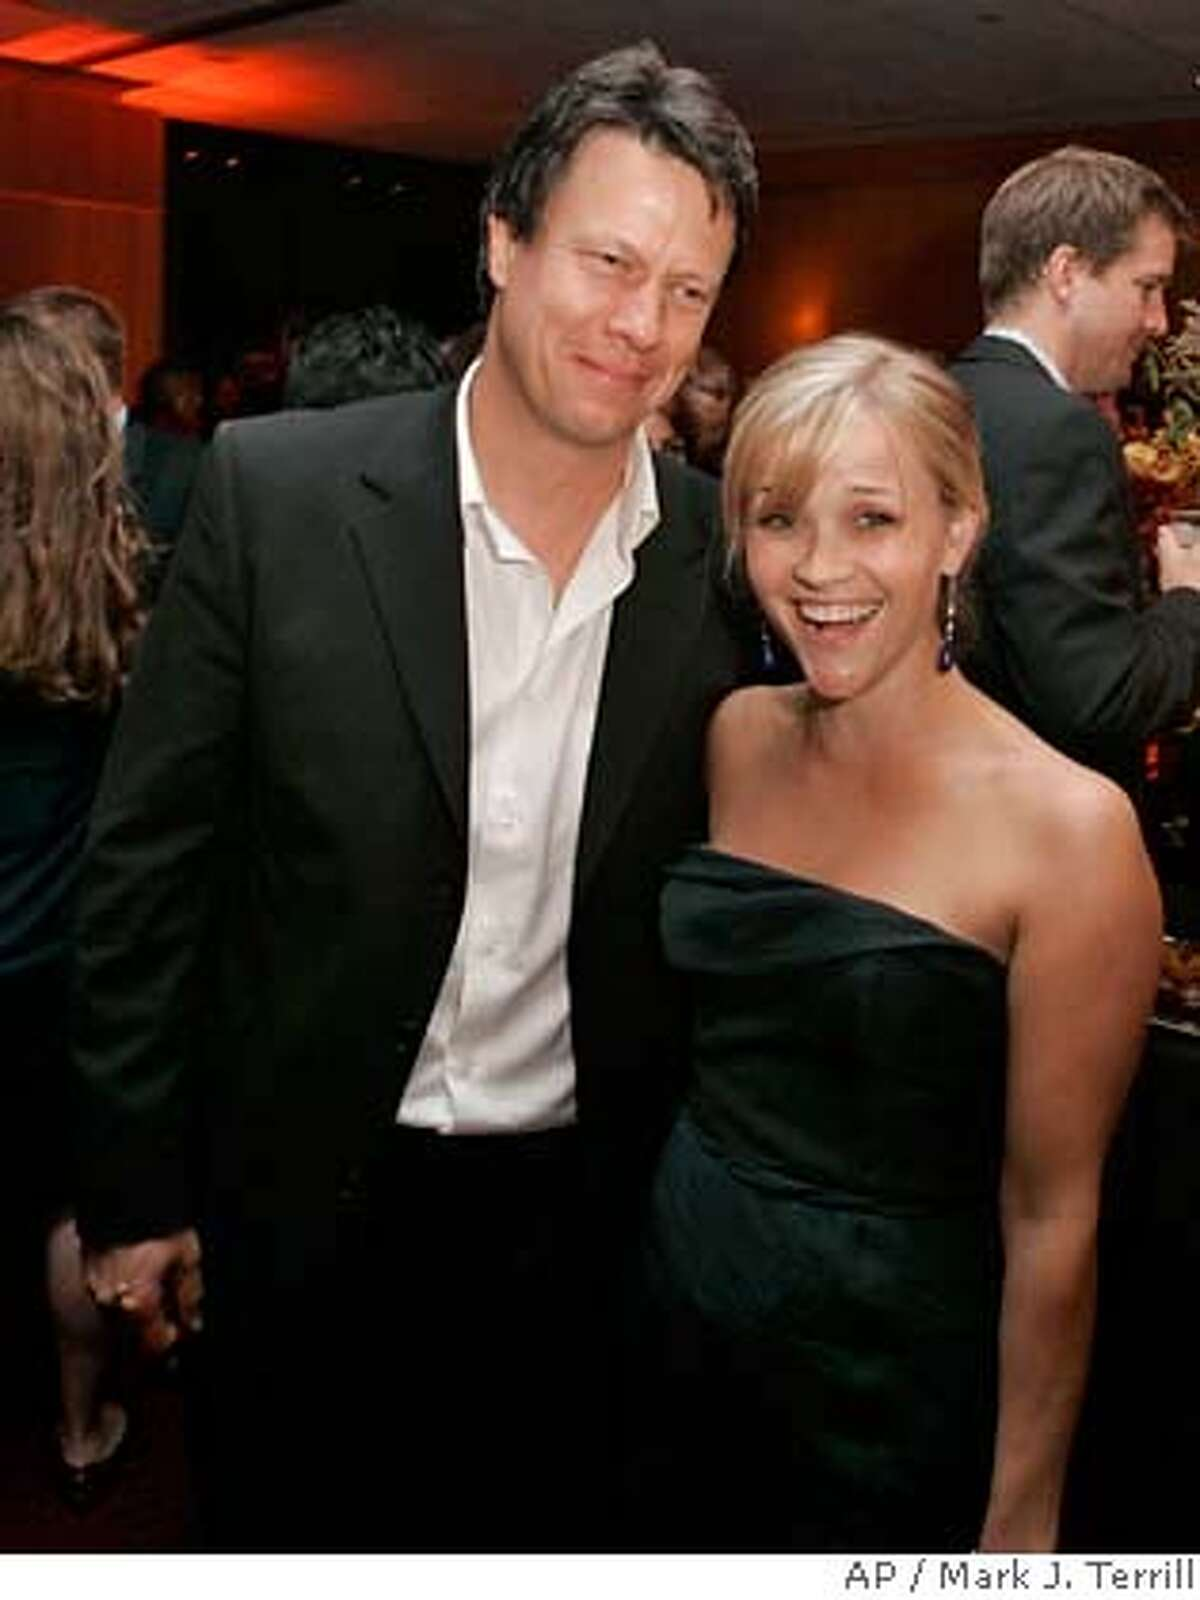 """Gavin Hood, left, and Reese Witherspoon are seen during an after-party for the premiere of """"Rendition"""" in Beverly Hills, Calif., Wednesday, Oct. 10, 2007. (AP Photo/Mark J. Terrill)"""